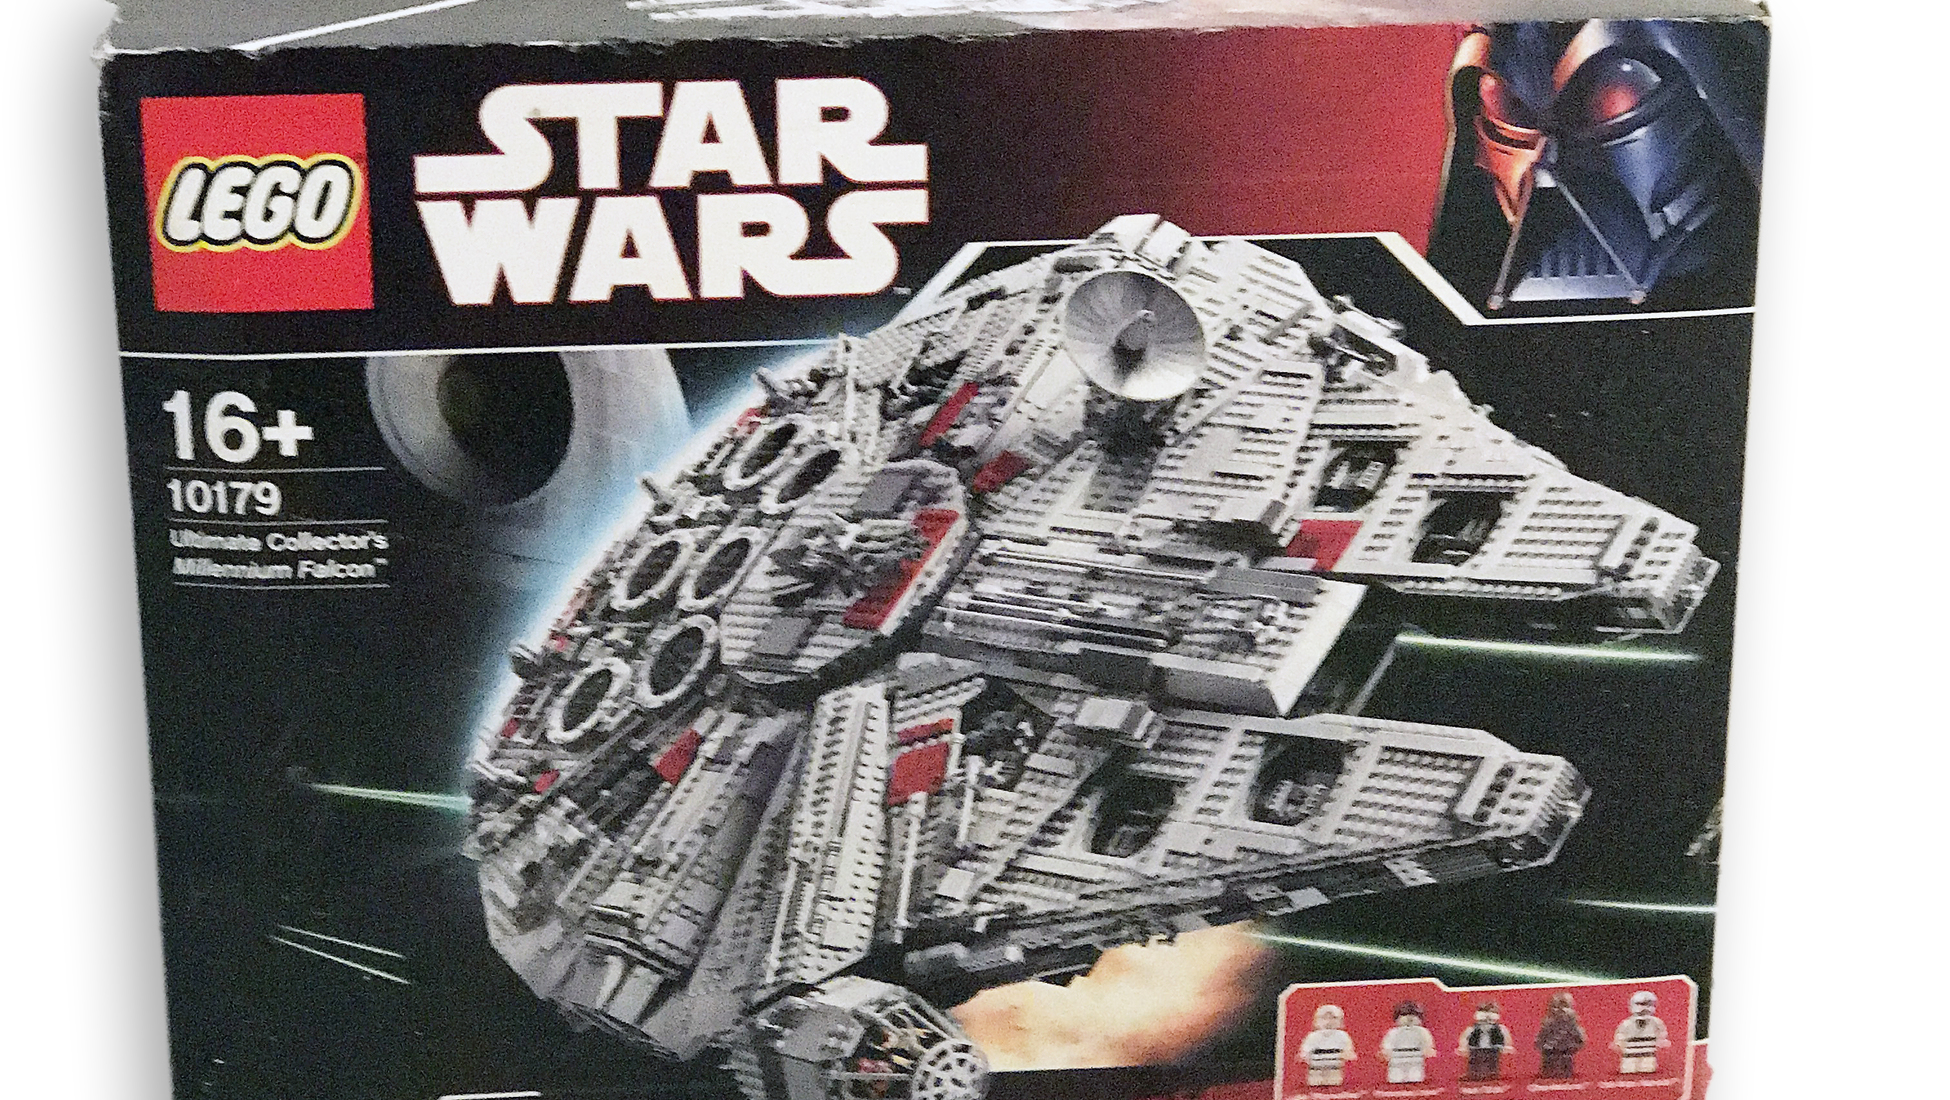 Star Wars - 10179 - Millennium Falcon